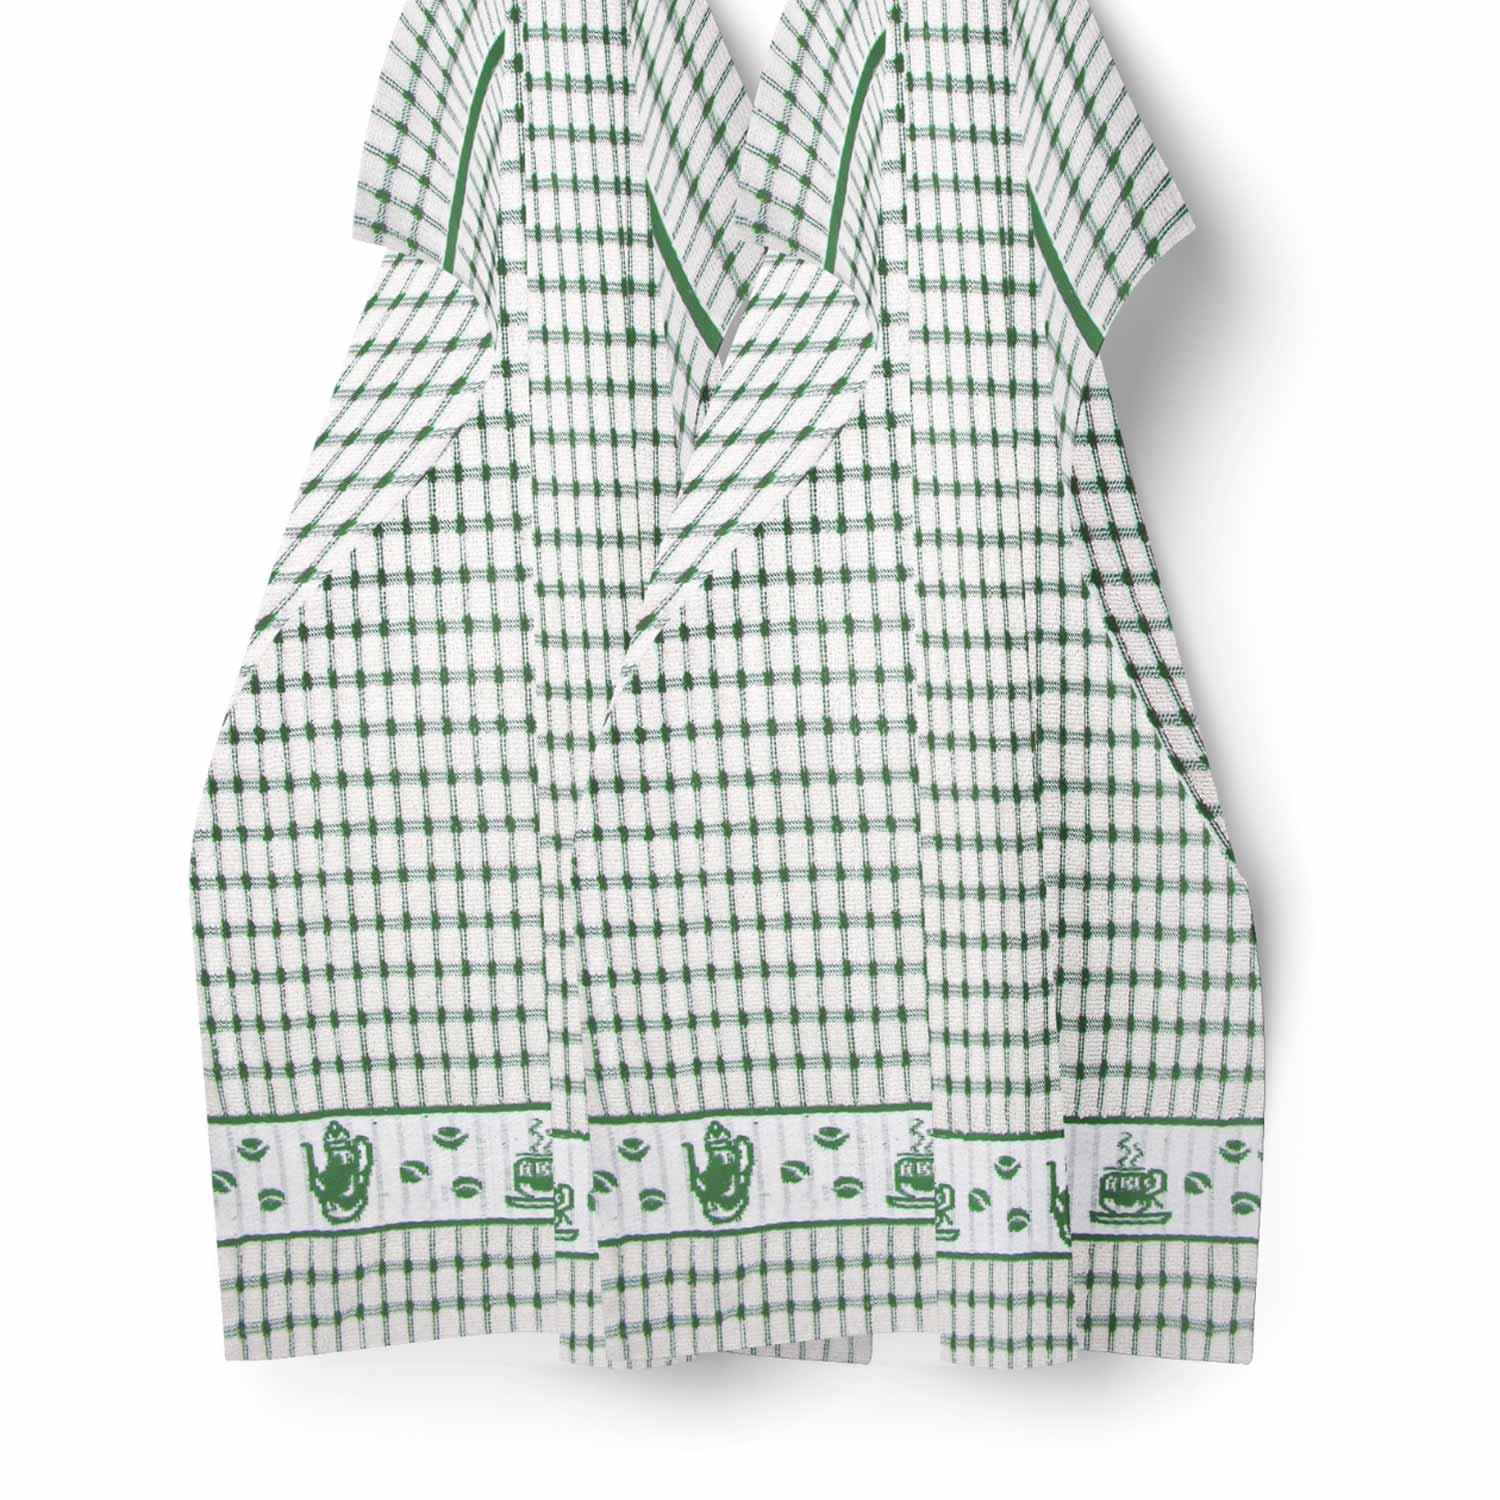 Packs-of-2-4-6-12-Tea-Towels-100-Cotton-Terry-Kitchen-Dish-Drying-Towel-Sets thumbnail 23